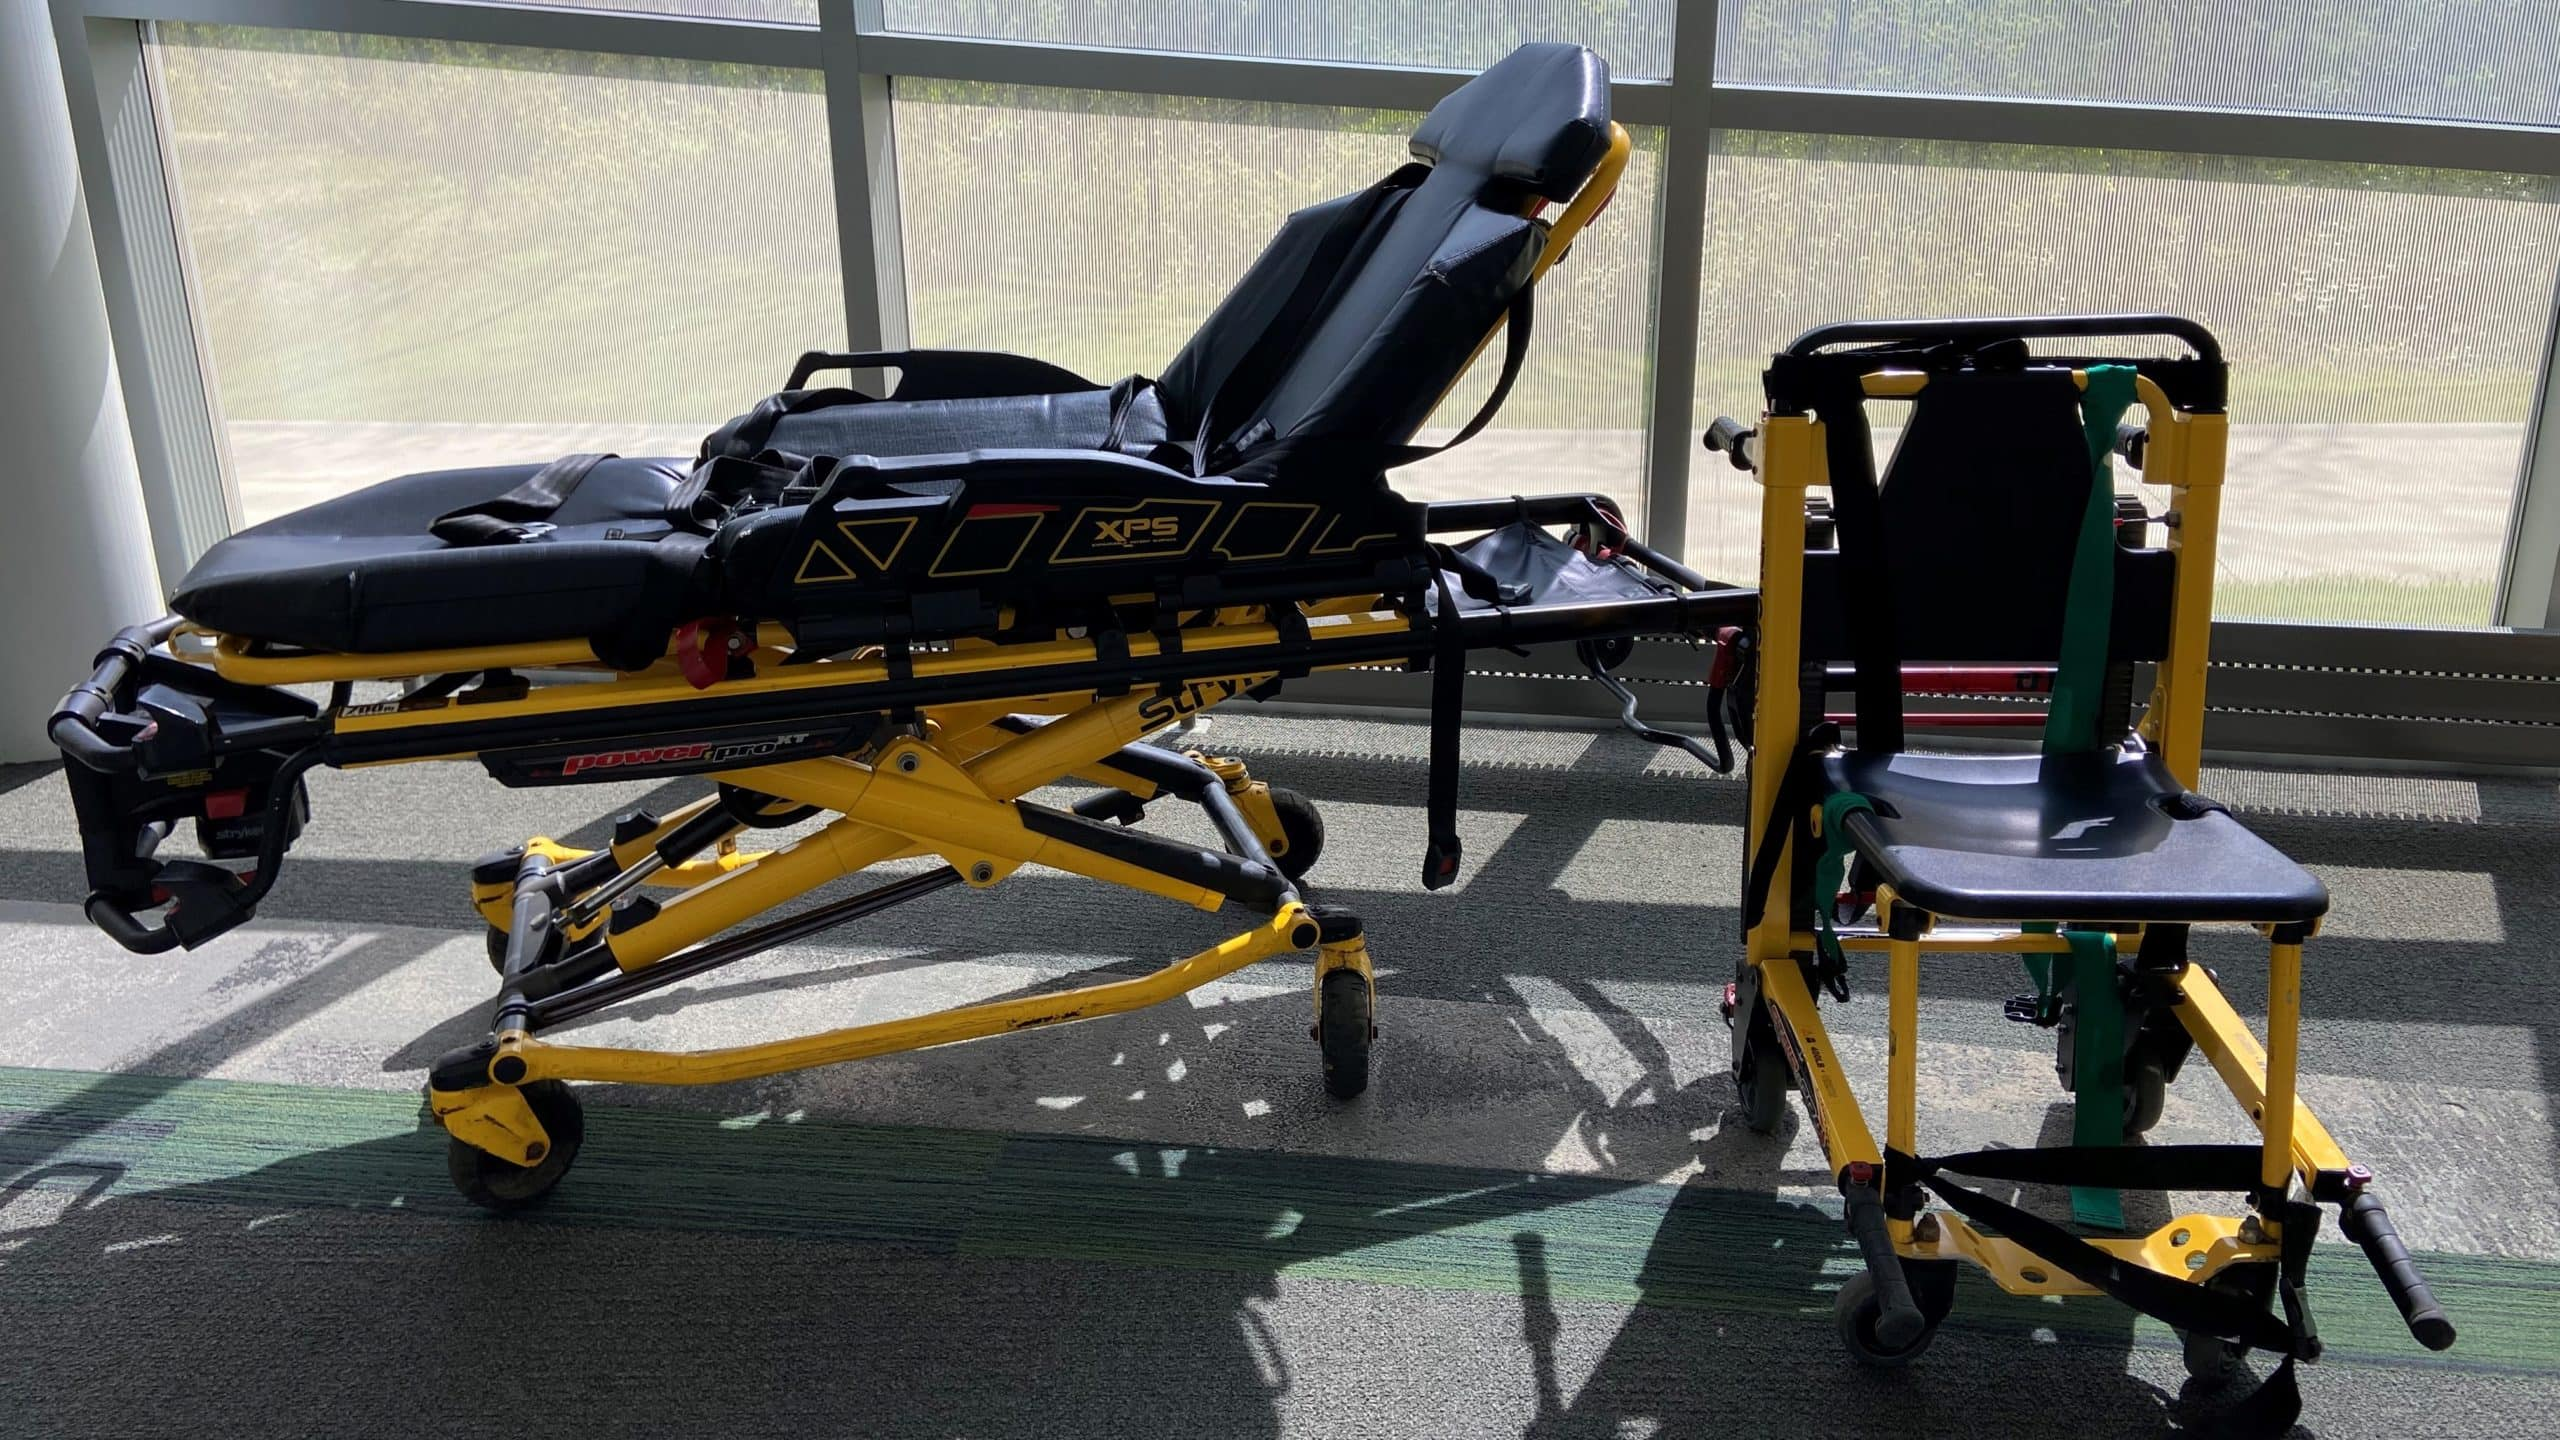 Stryker cot and Stryker chair for EMS